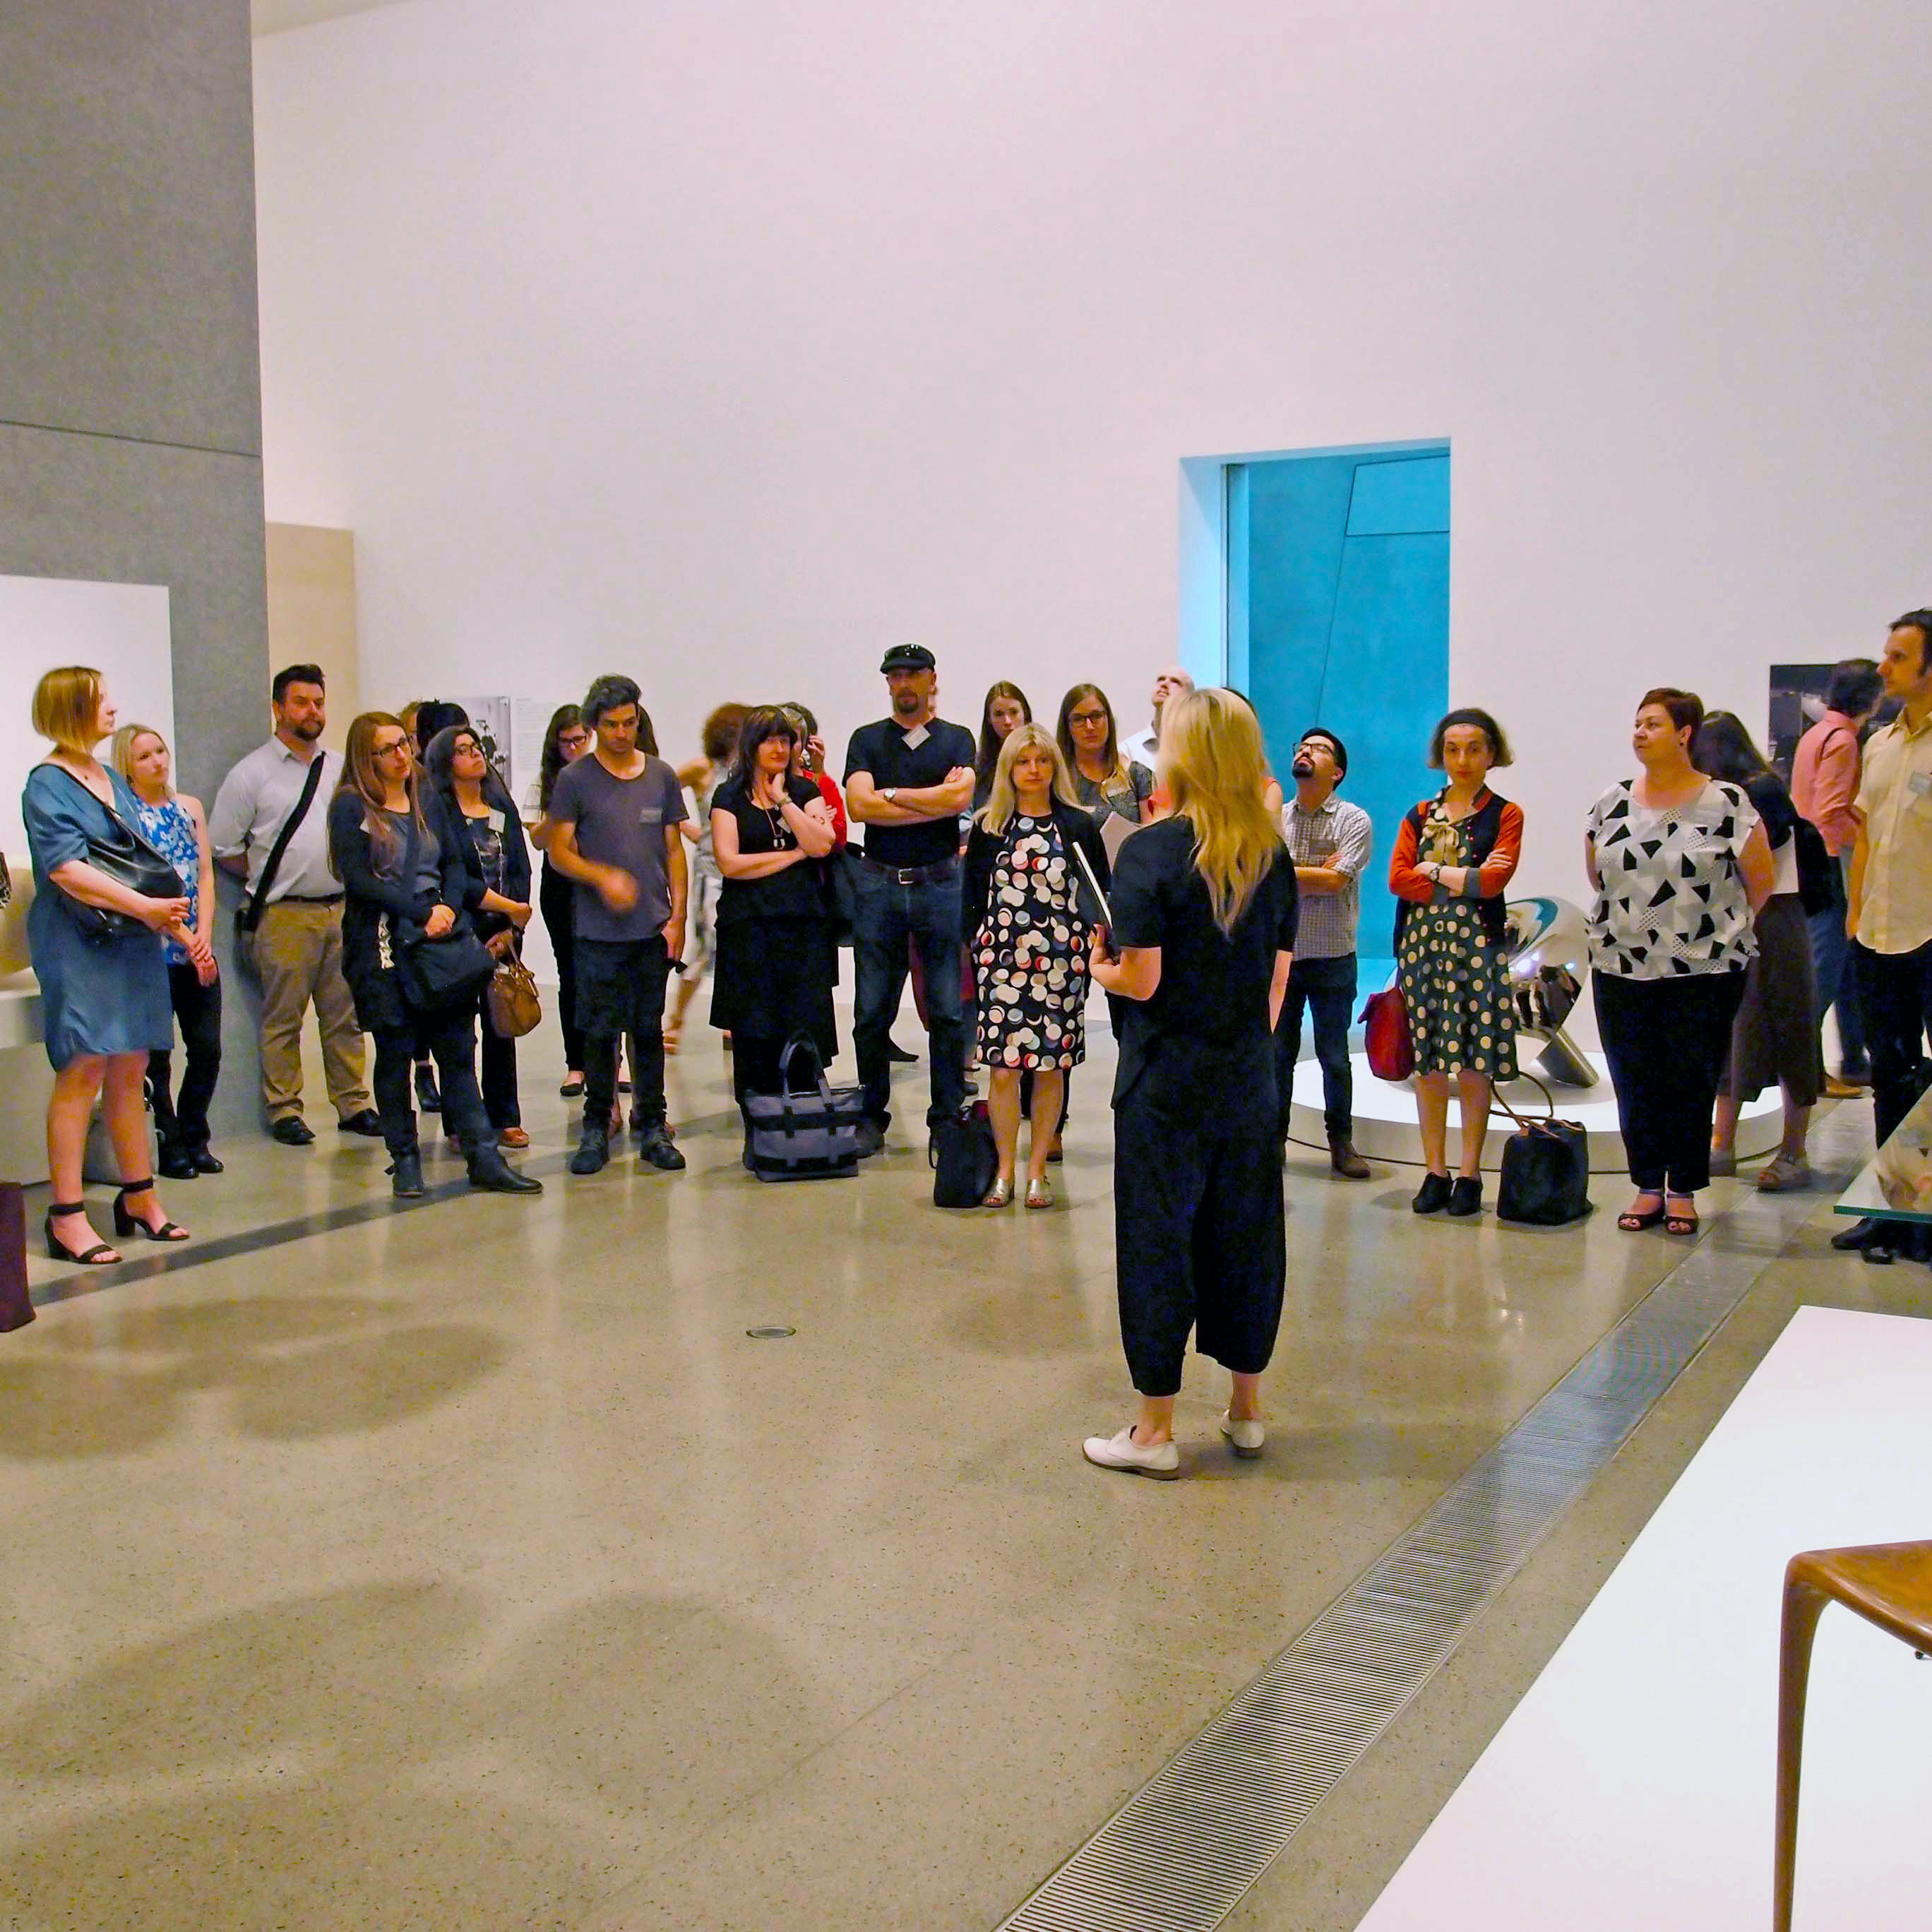 Tour of the Rigg Design Prize at the National Gallery of Victoria as part of the PGAV Curatorial Intensive 2015.